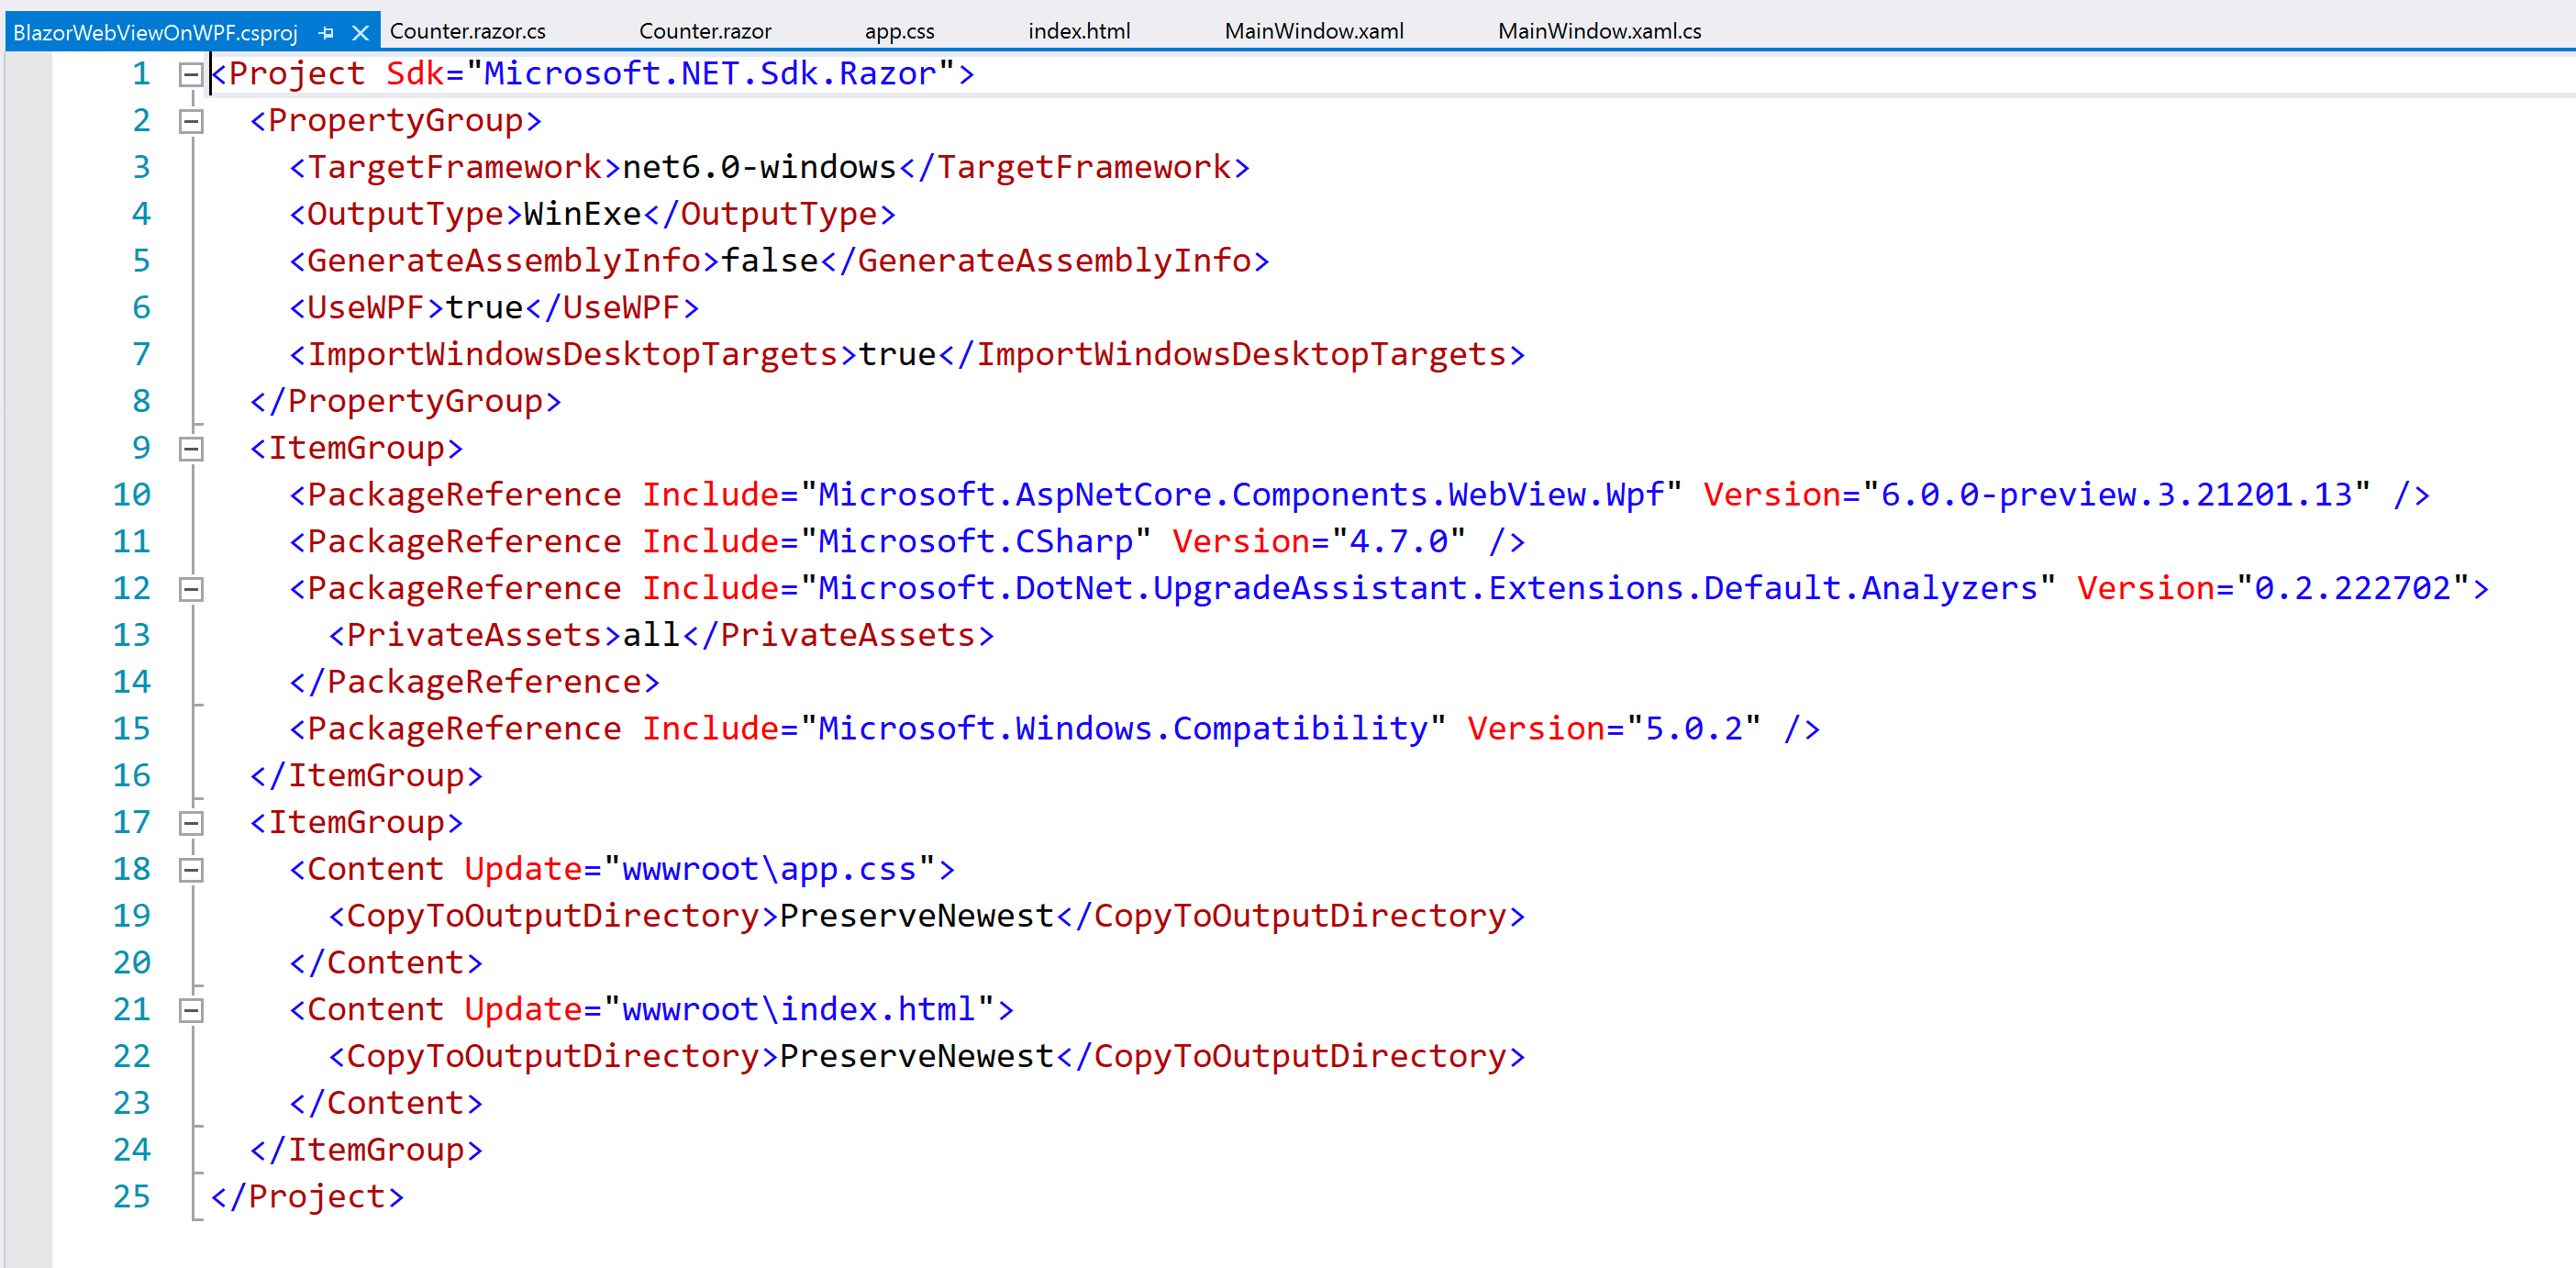 A look at some code on BlazorWebViewOnWPF.csproj